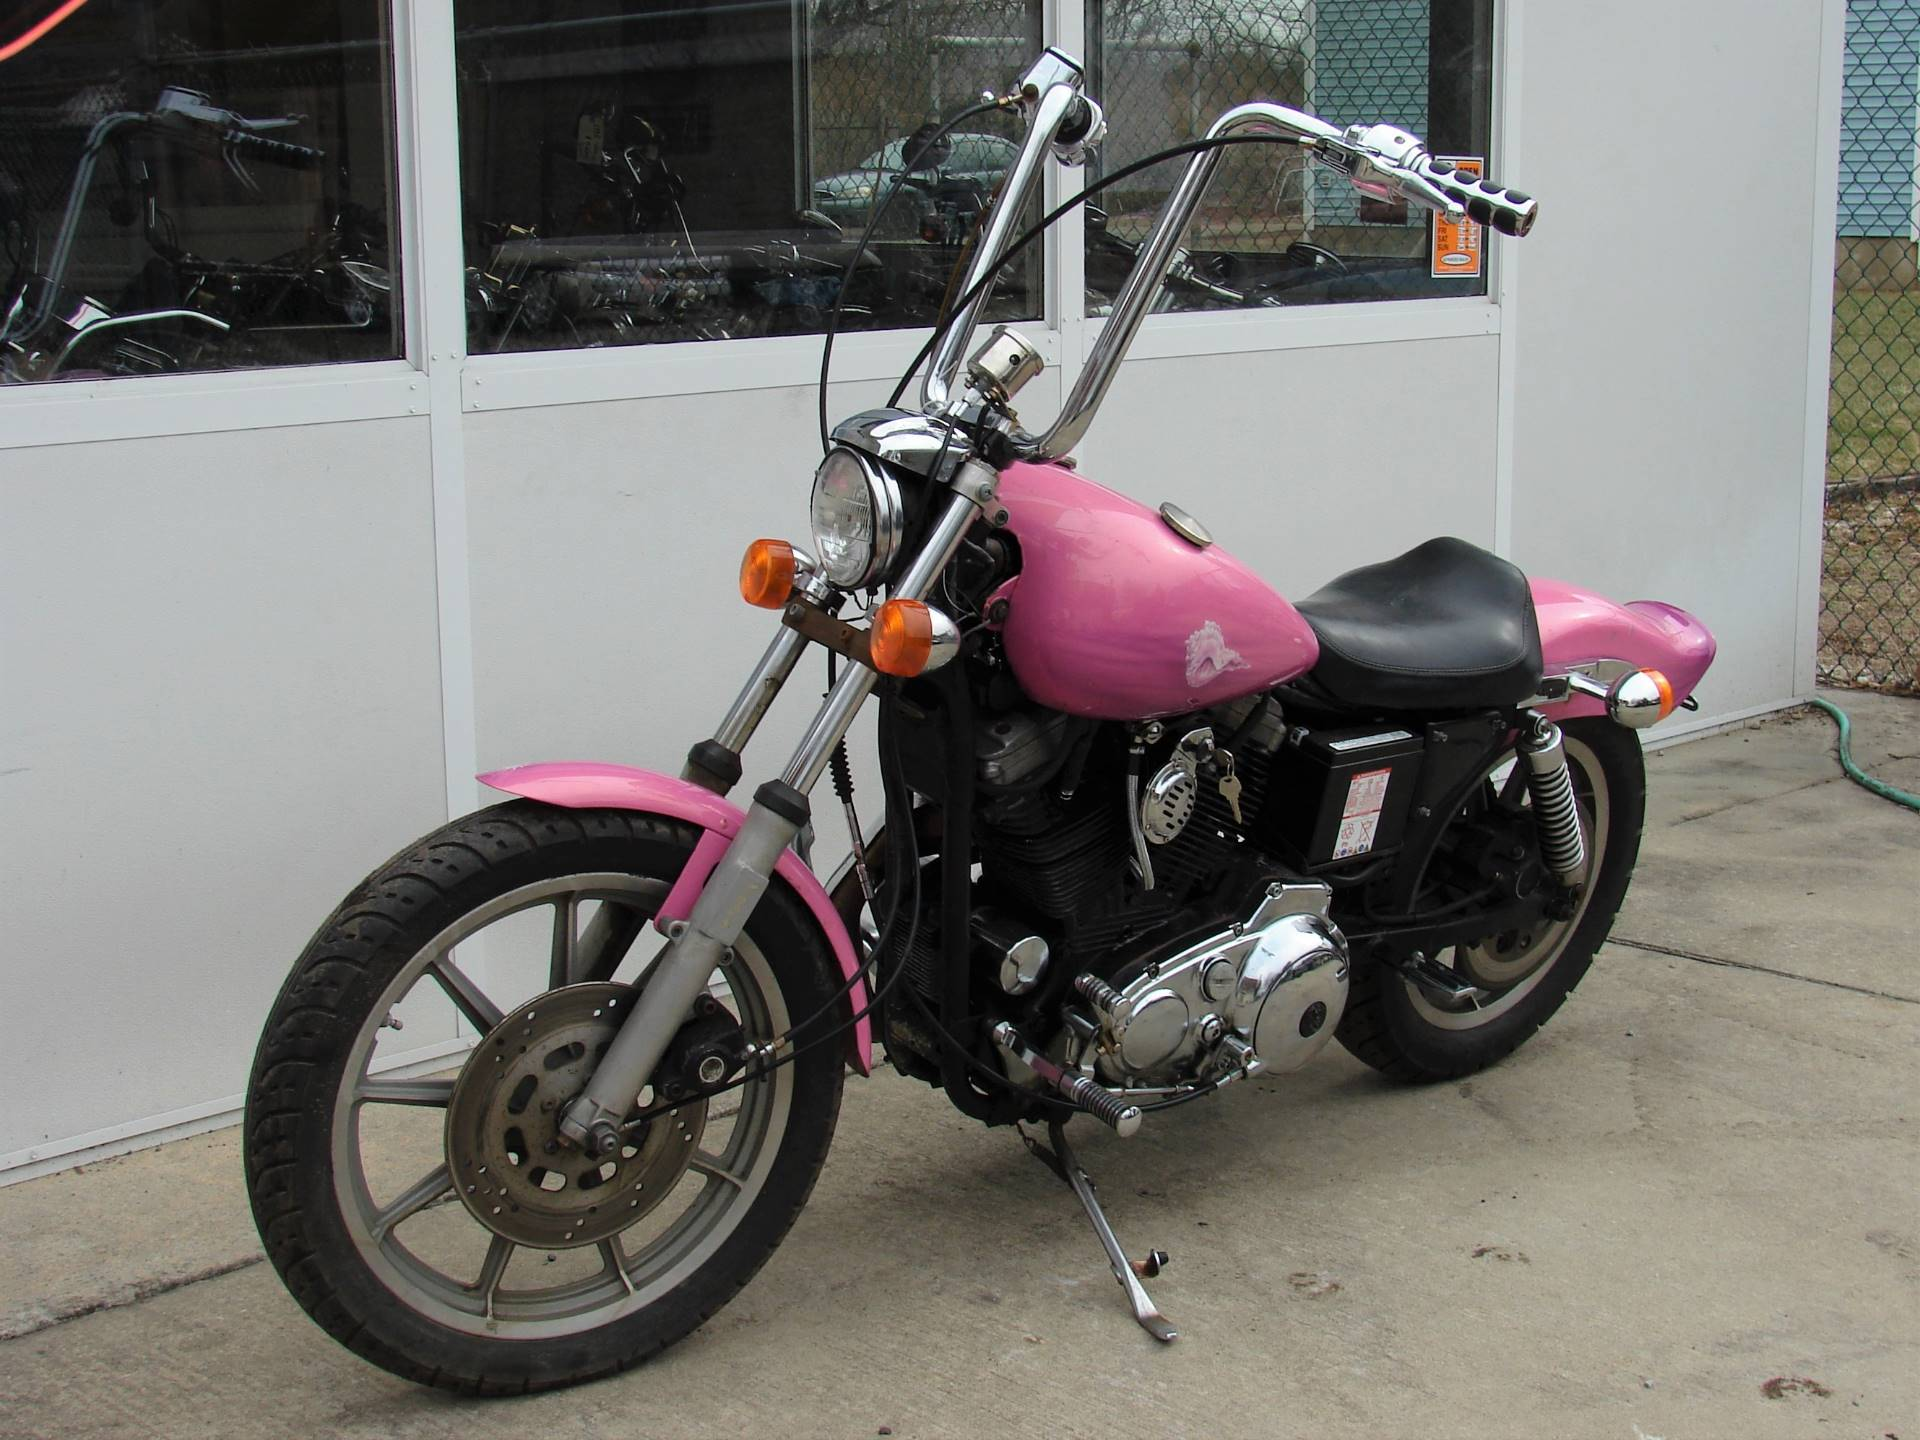 1987 Harley-Davidson 883 Sportster in Williamstown, New Jersey